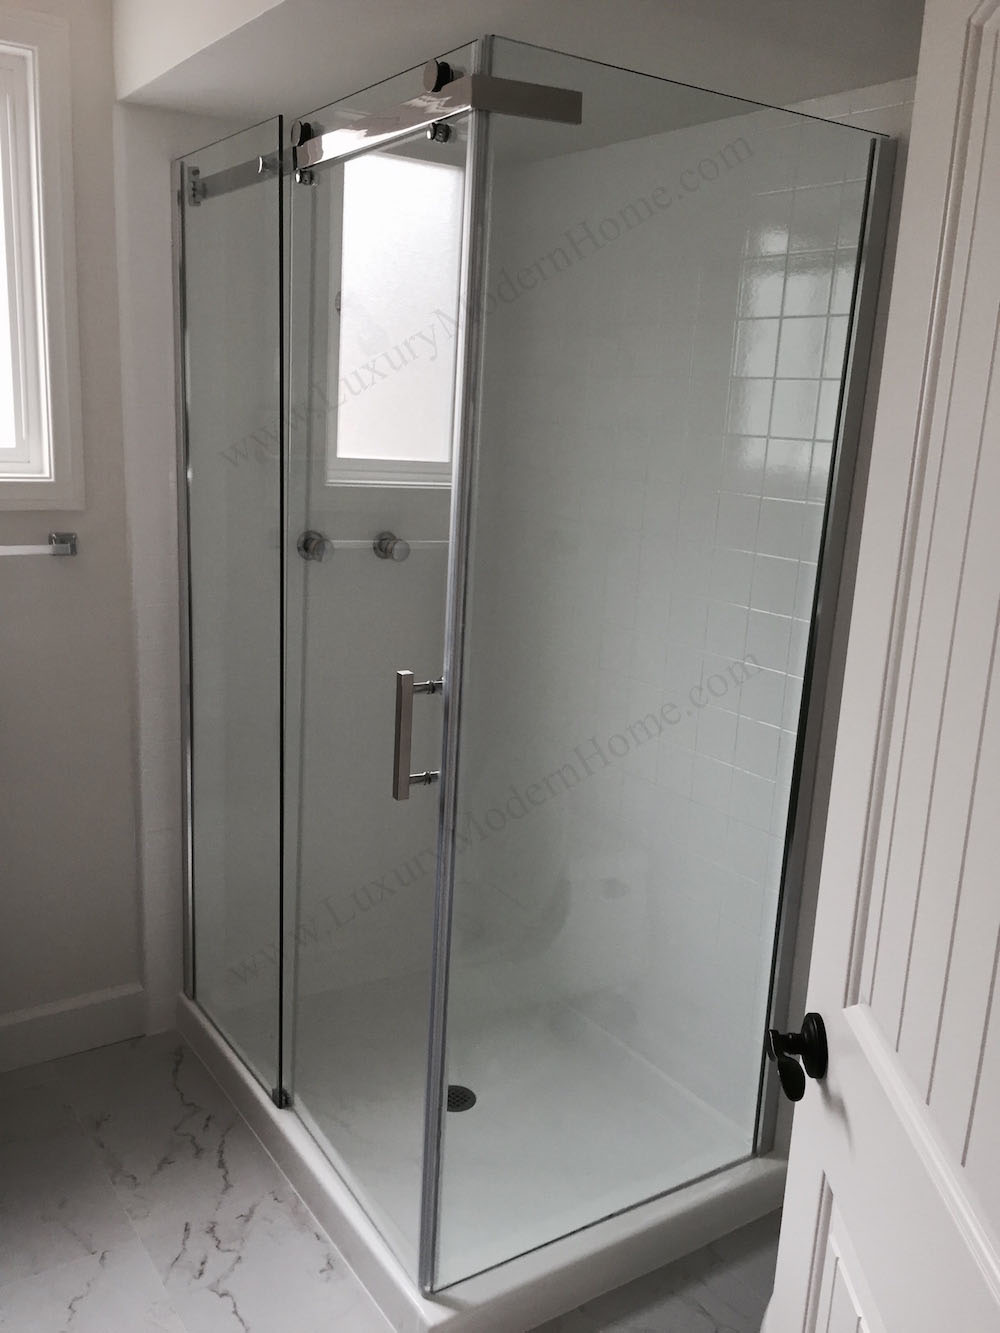 Superieur 32 Corner Shower Stall. MAXIMUS Corner Sliding Shower Enclosure 48 X 32 75  Stall Home